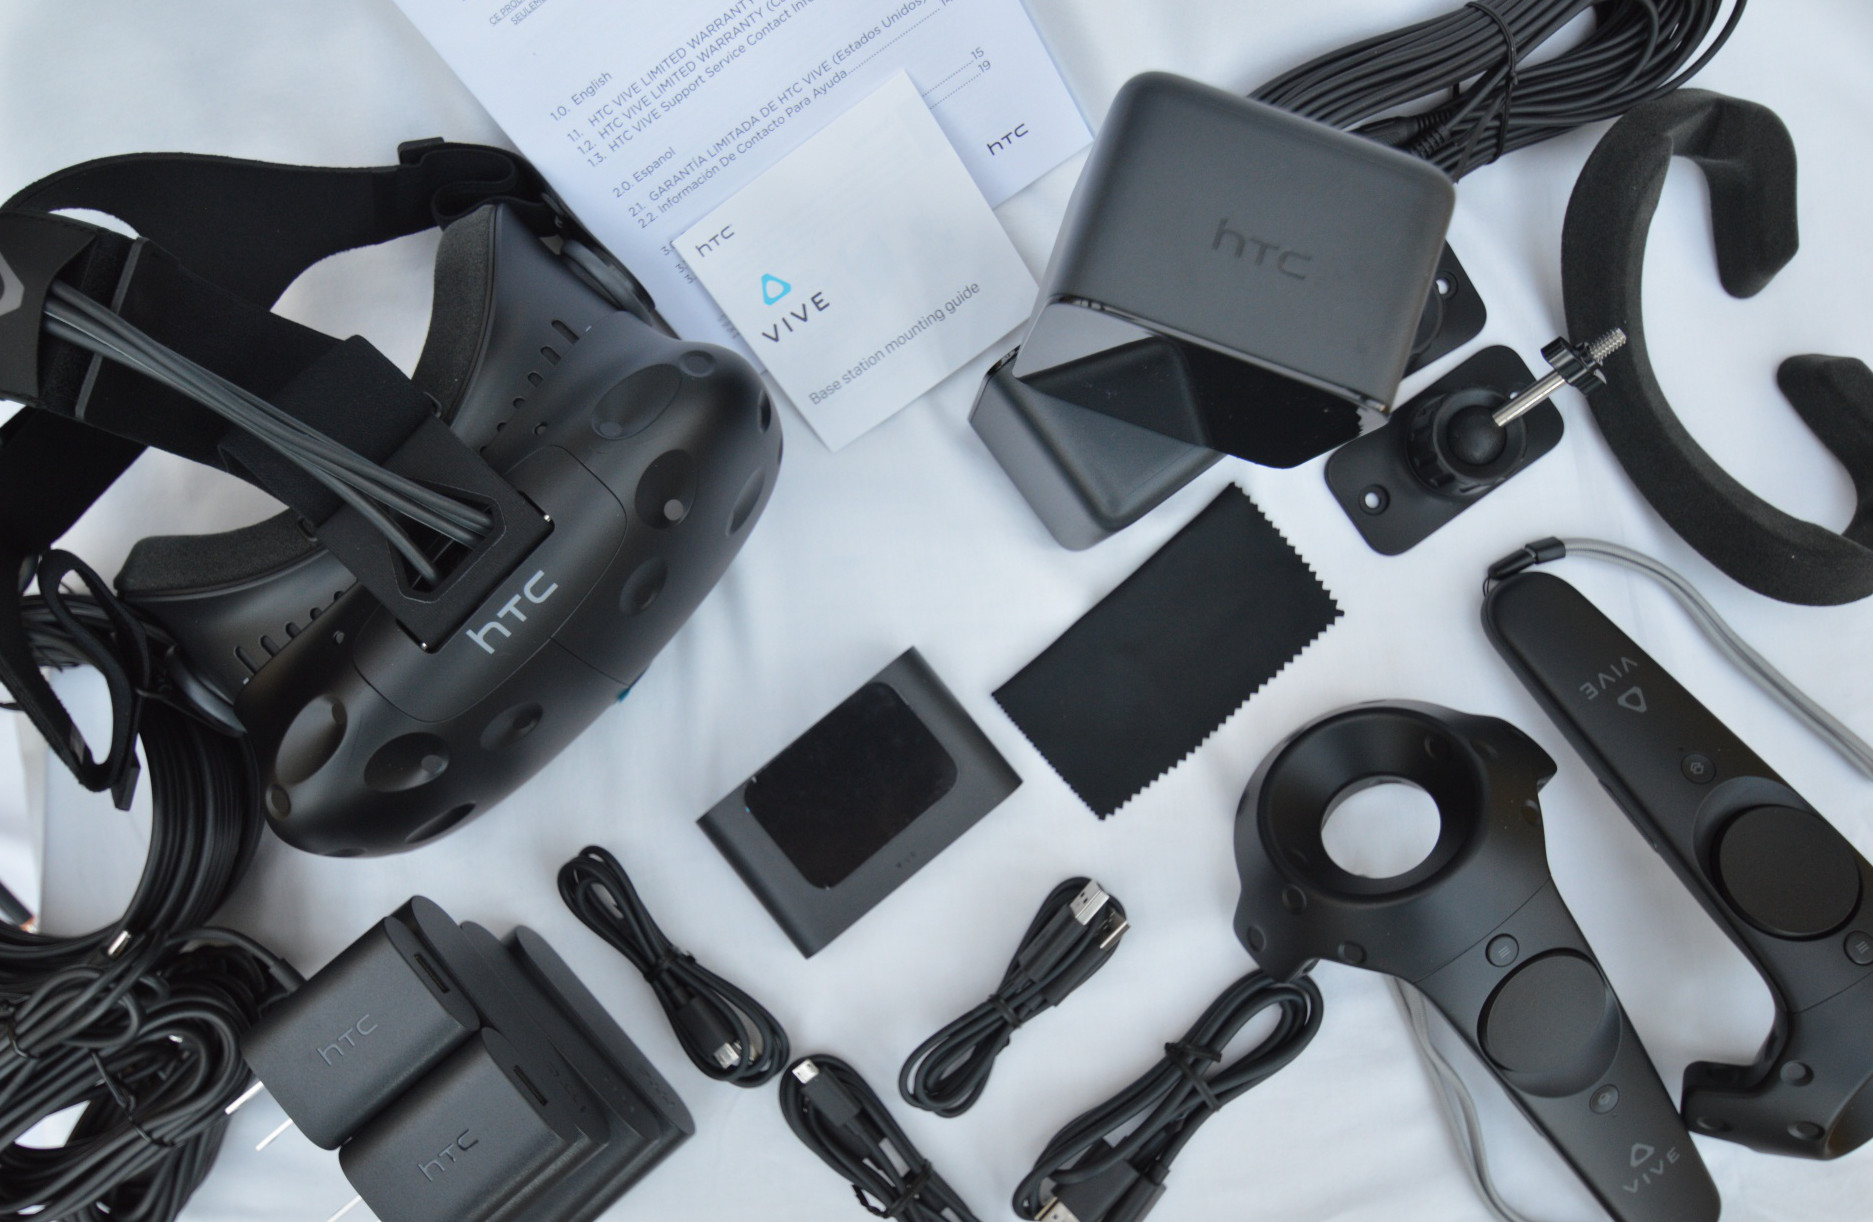 HTC Vive Consumer Edition Has Landed, We Unbox Room-scale VR – Road